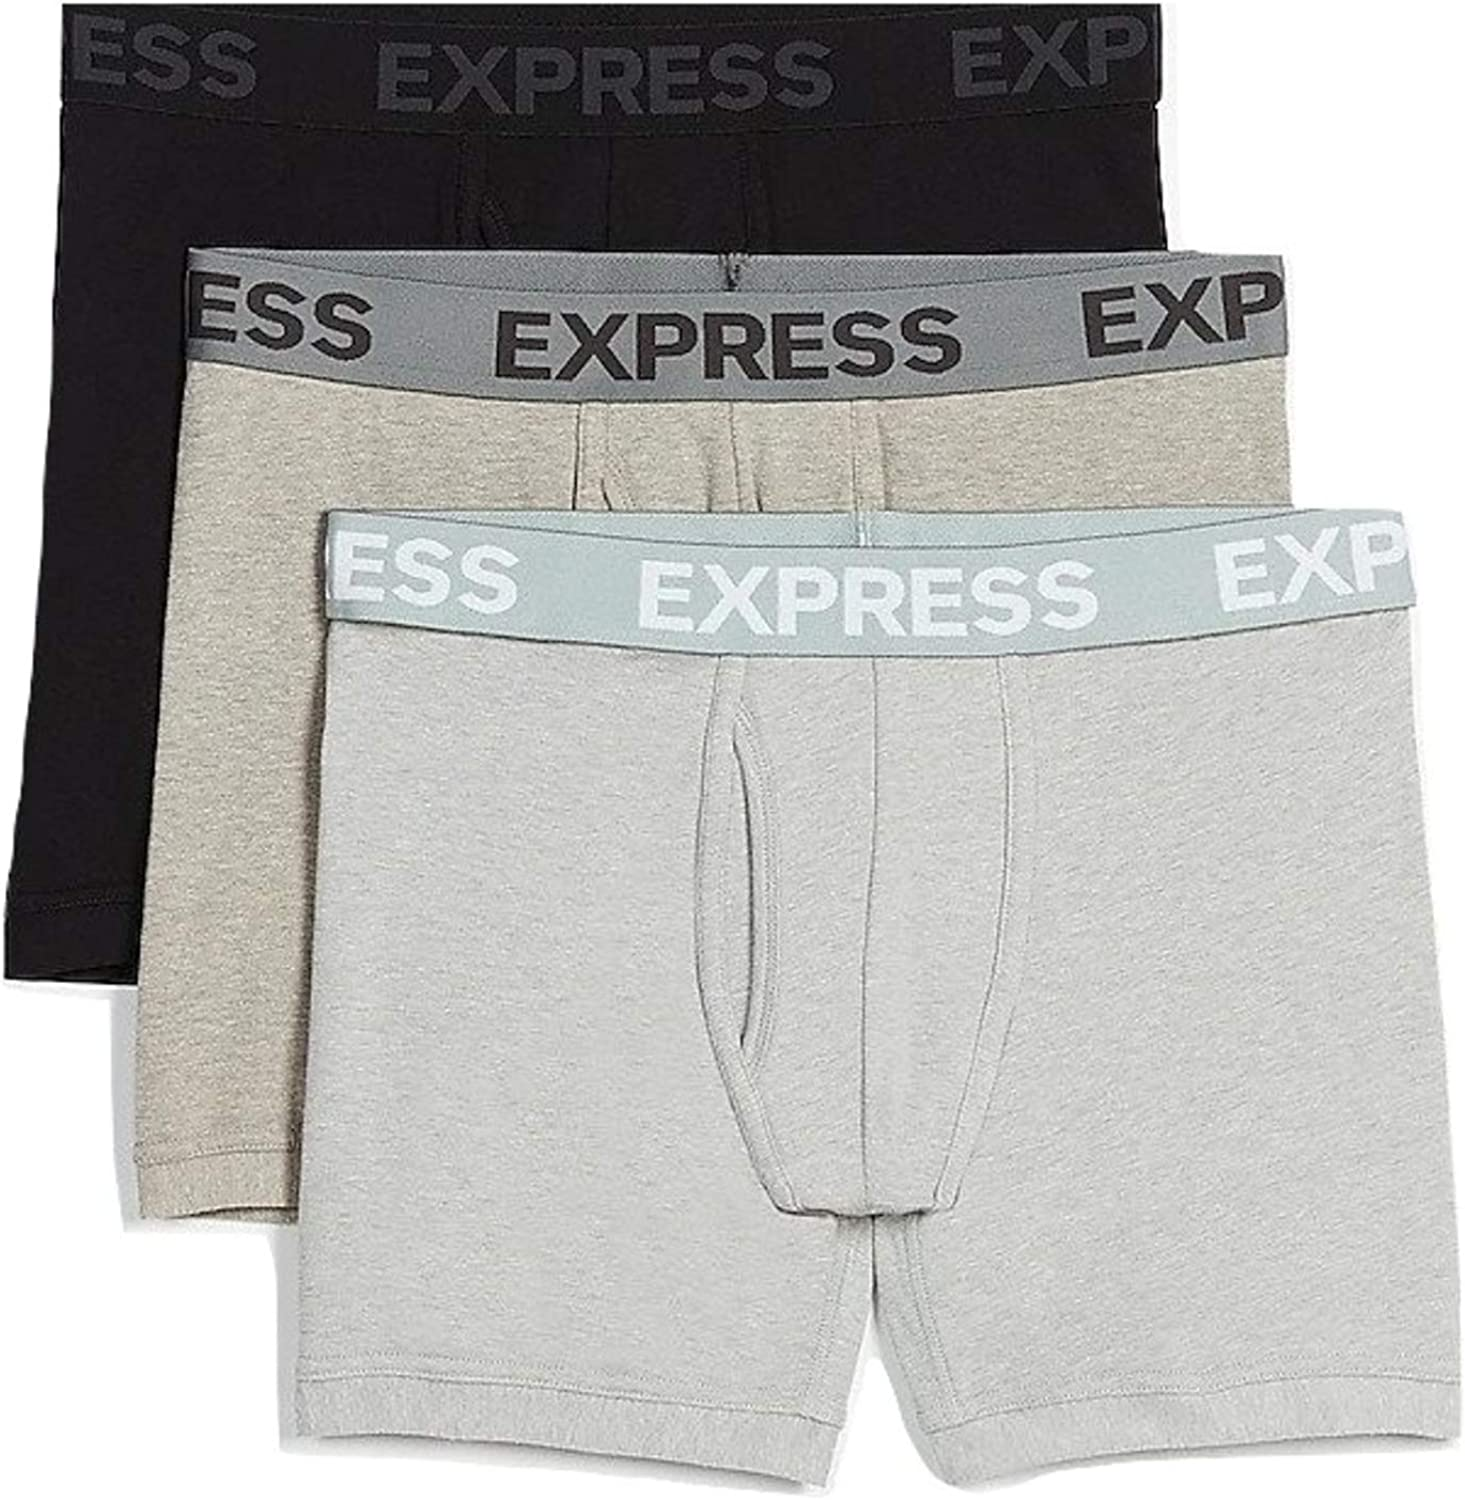 Express Men's 3 Pack Gray and Black Boxer Briefs